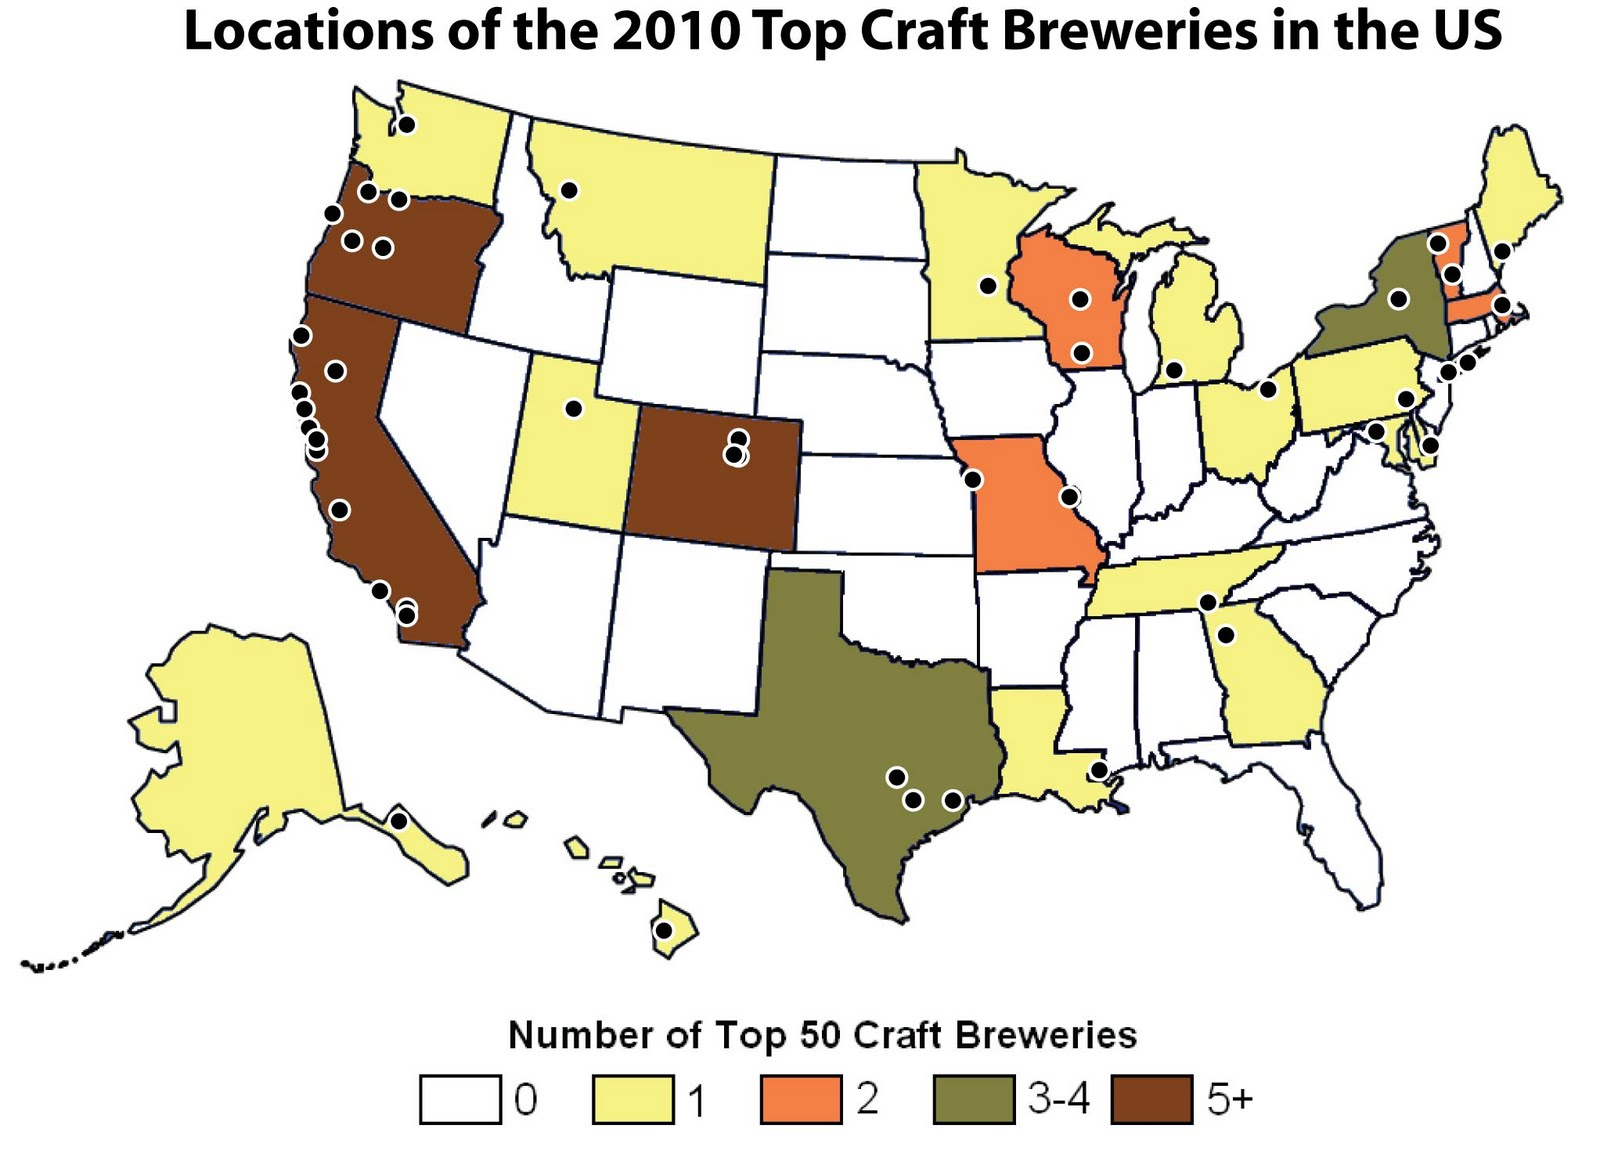 Top 50 US Craft Breweries in 2010 Where Are They Located